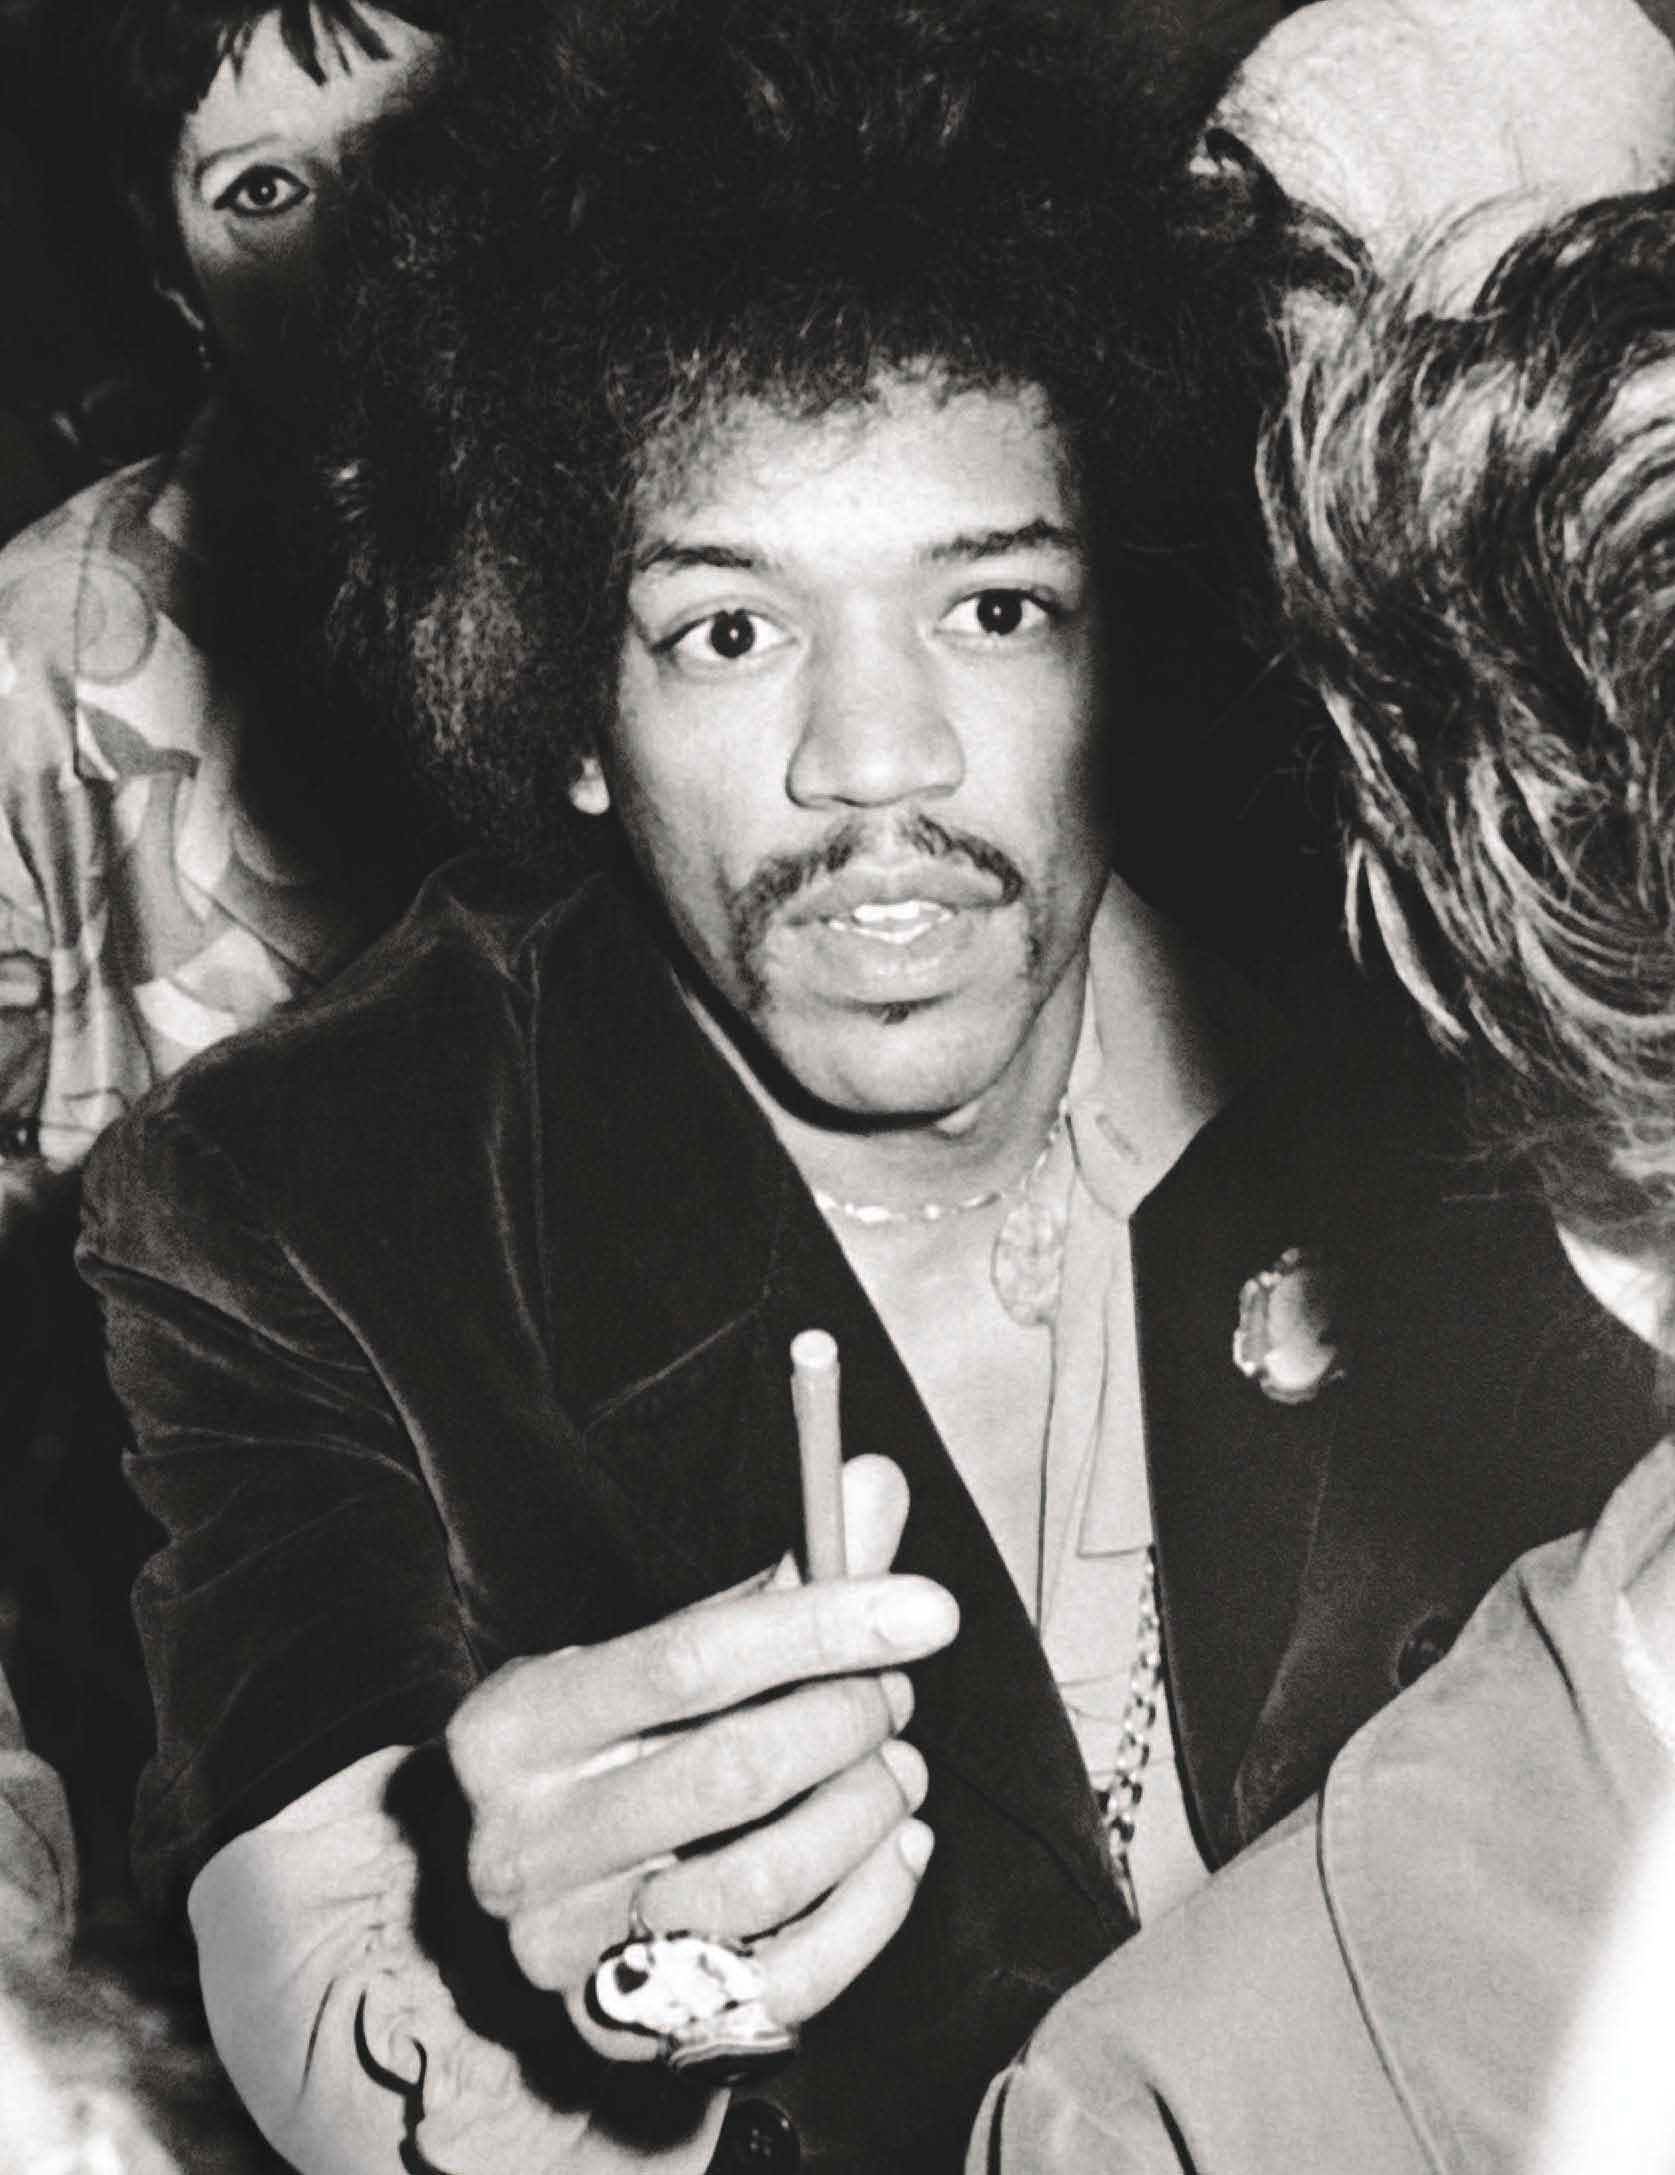 Jimi Hendrix in the crowd at the Martin Luther King Jr. Benefit Concert at Madison Square Garden on June 28, 1968.